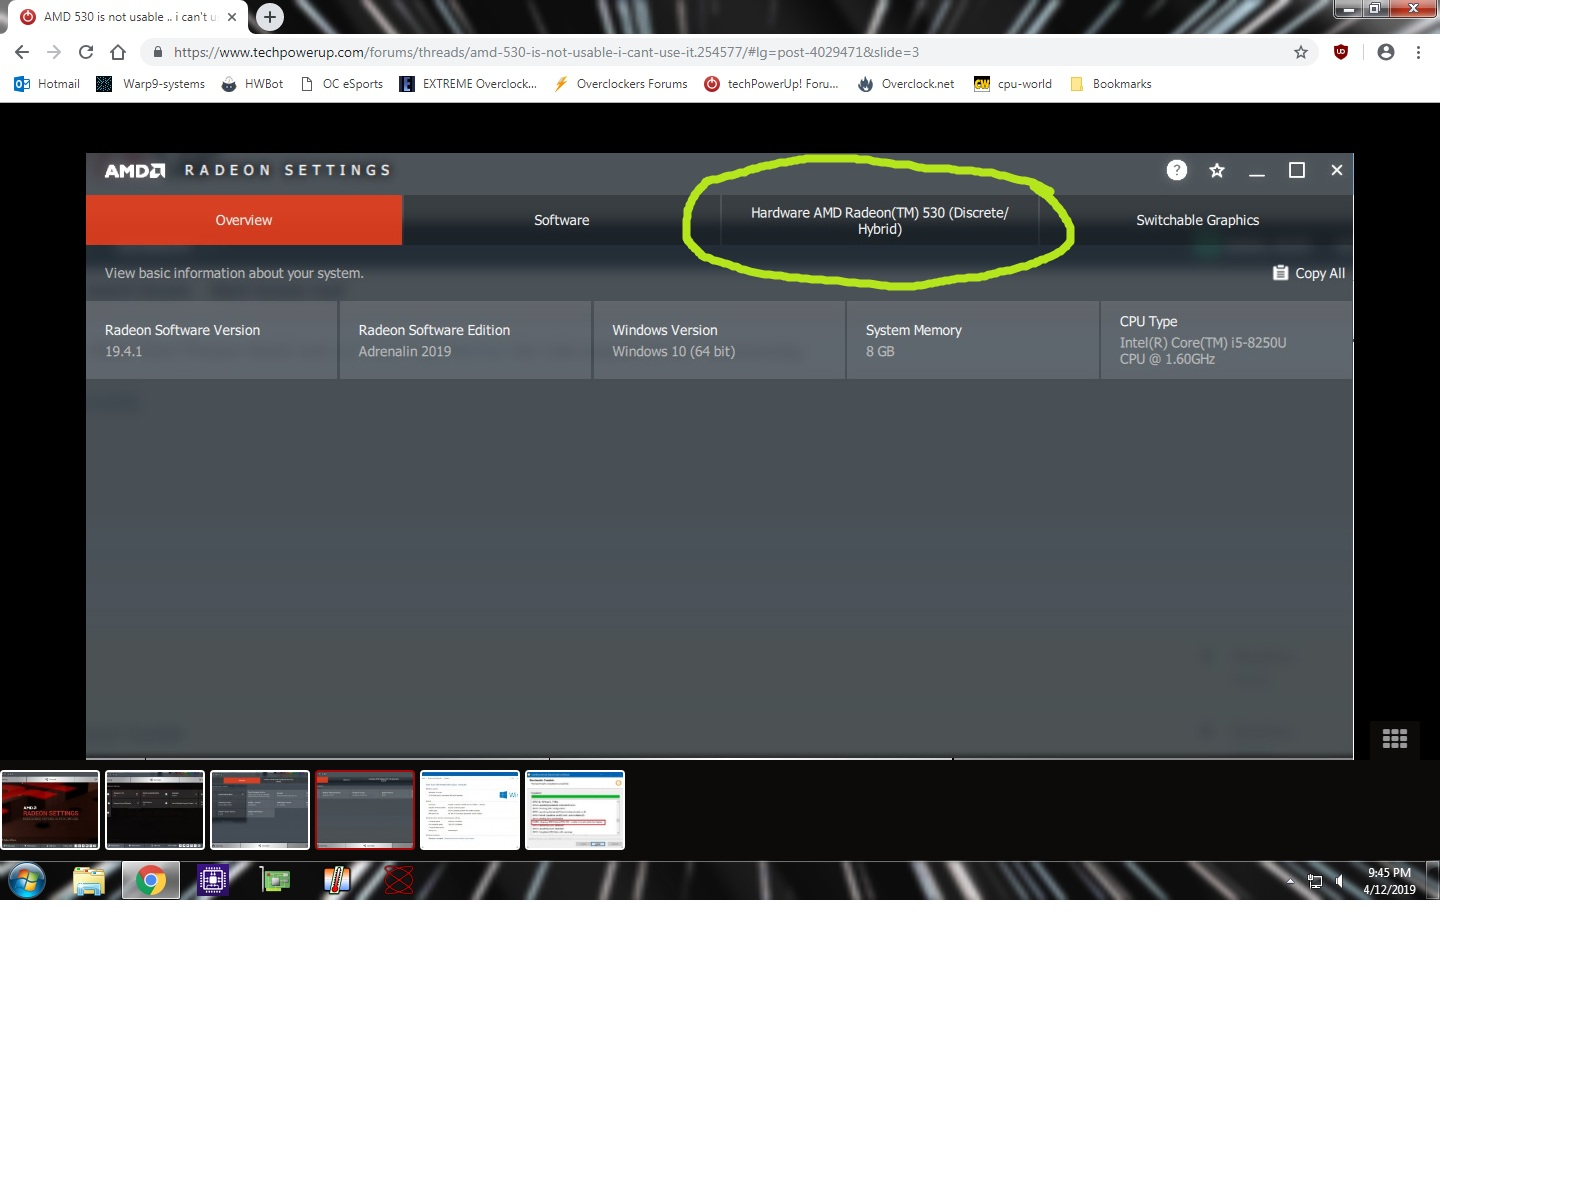 AMD 530 is not usable    i can't use it | TechPowerUp Forums